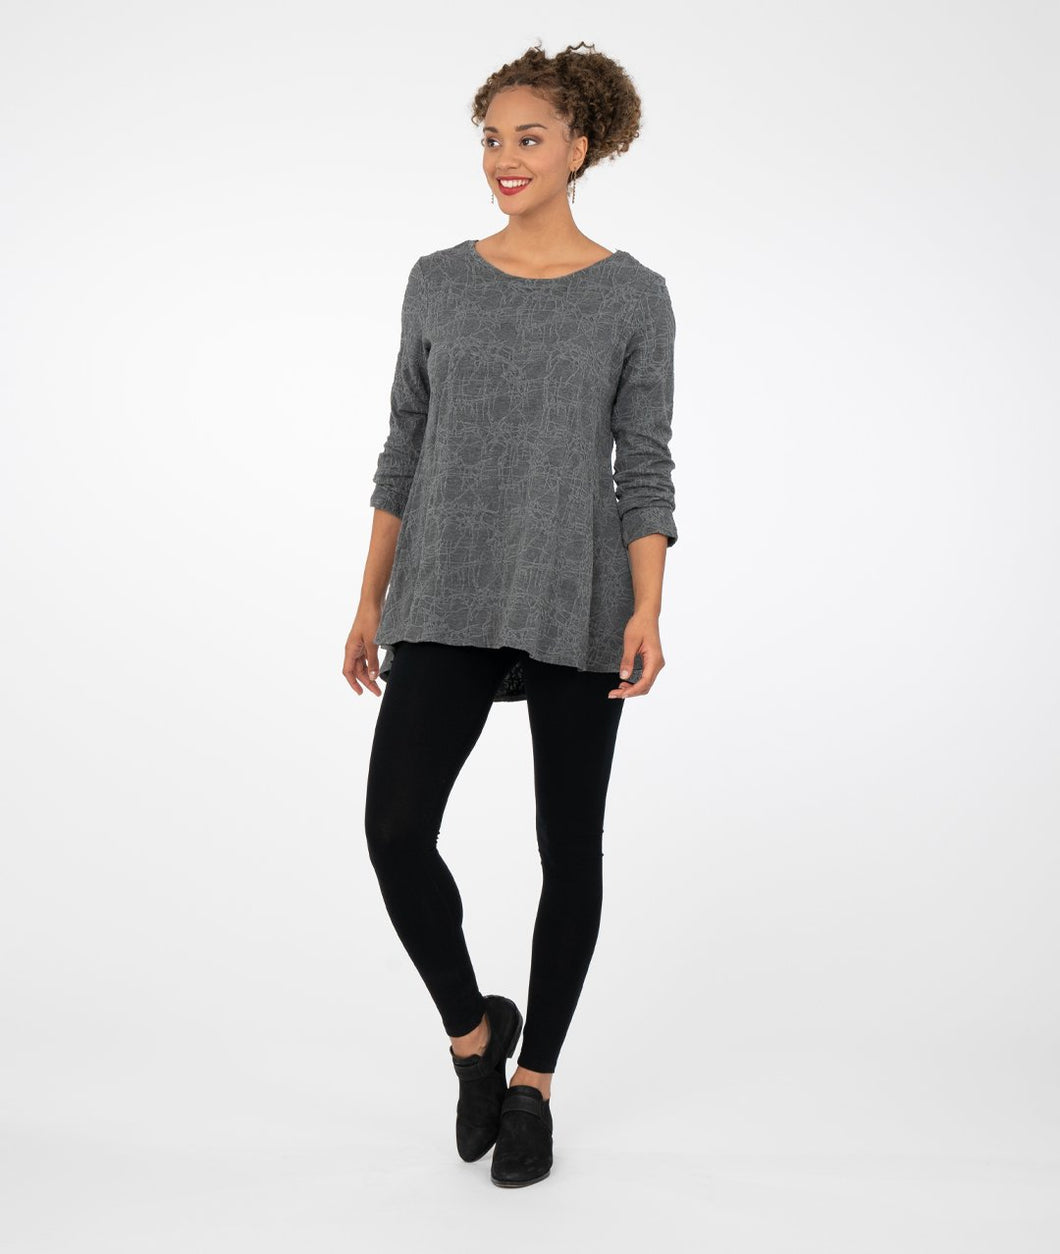 model in black leggings with a long pull over simple gray sweater top, in front of a white background